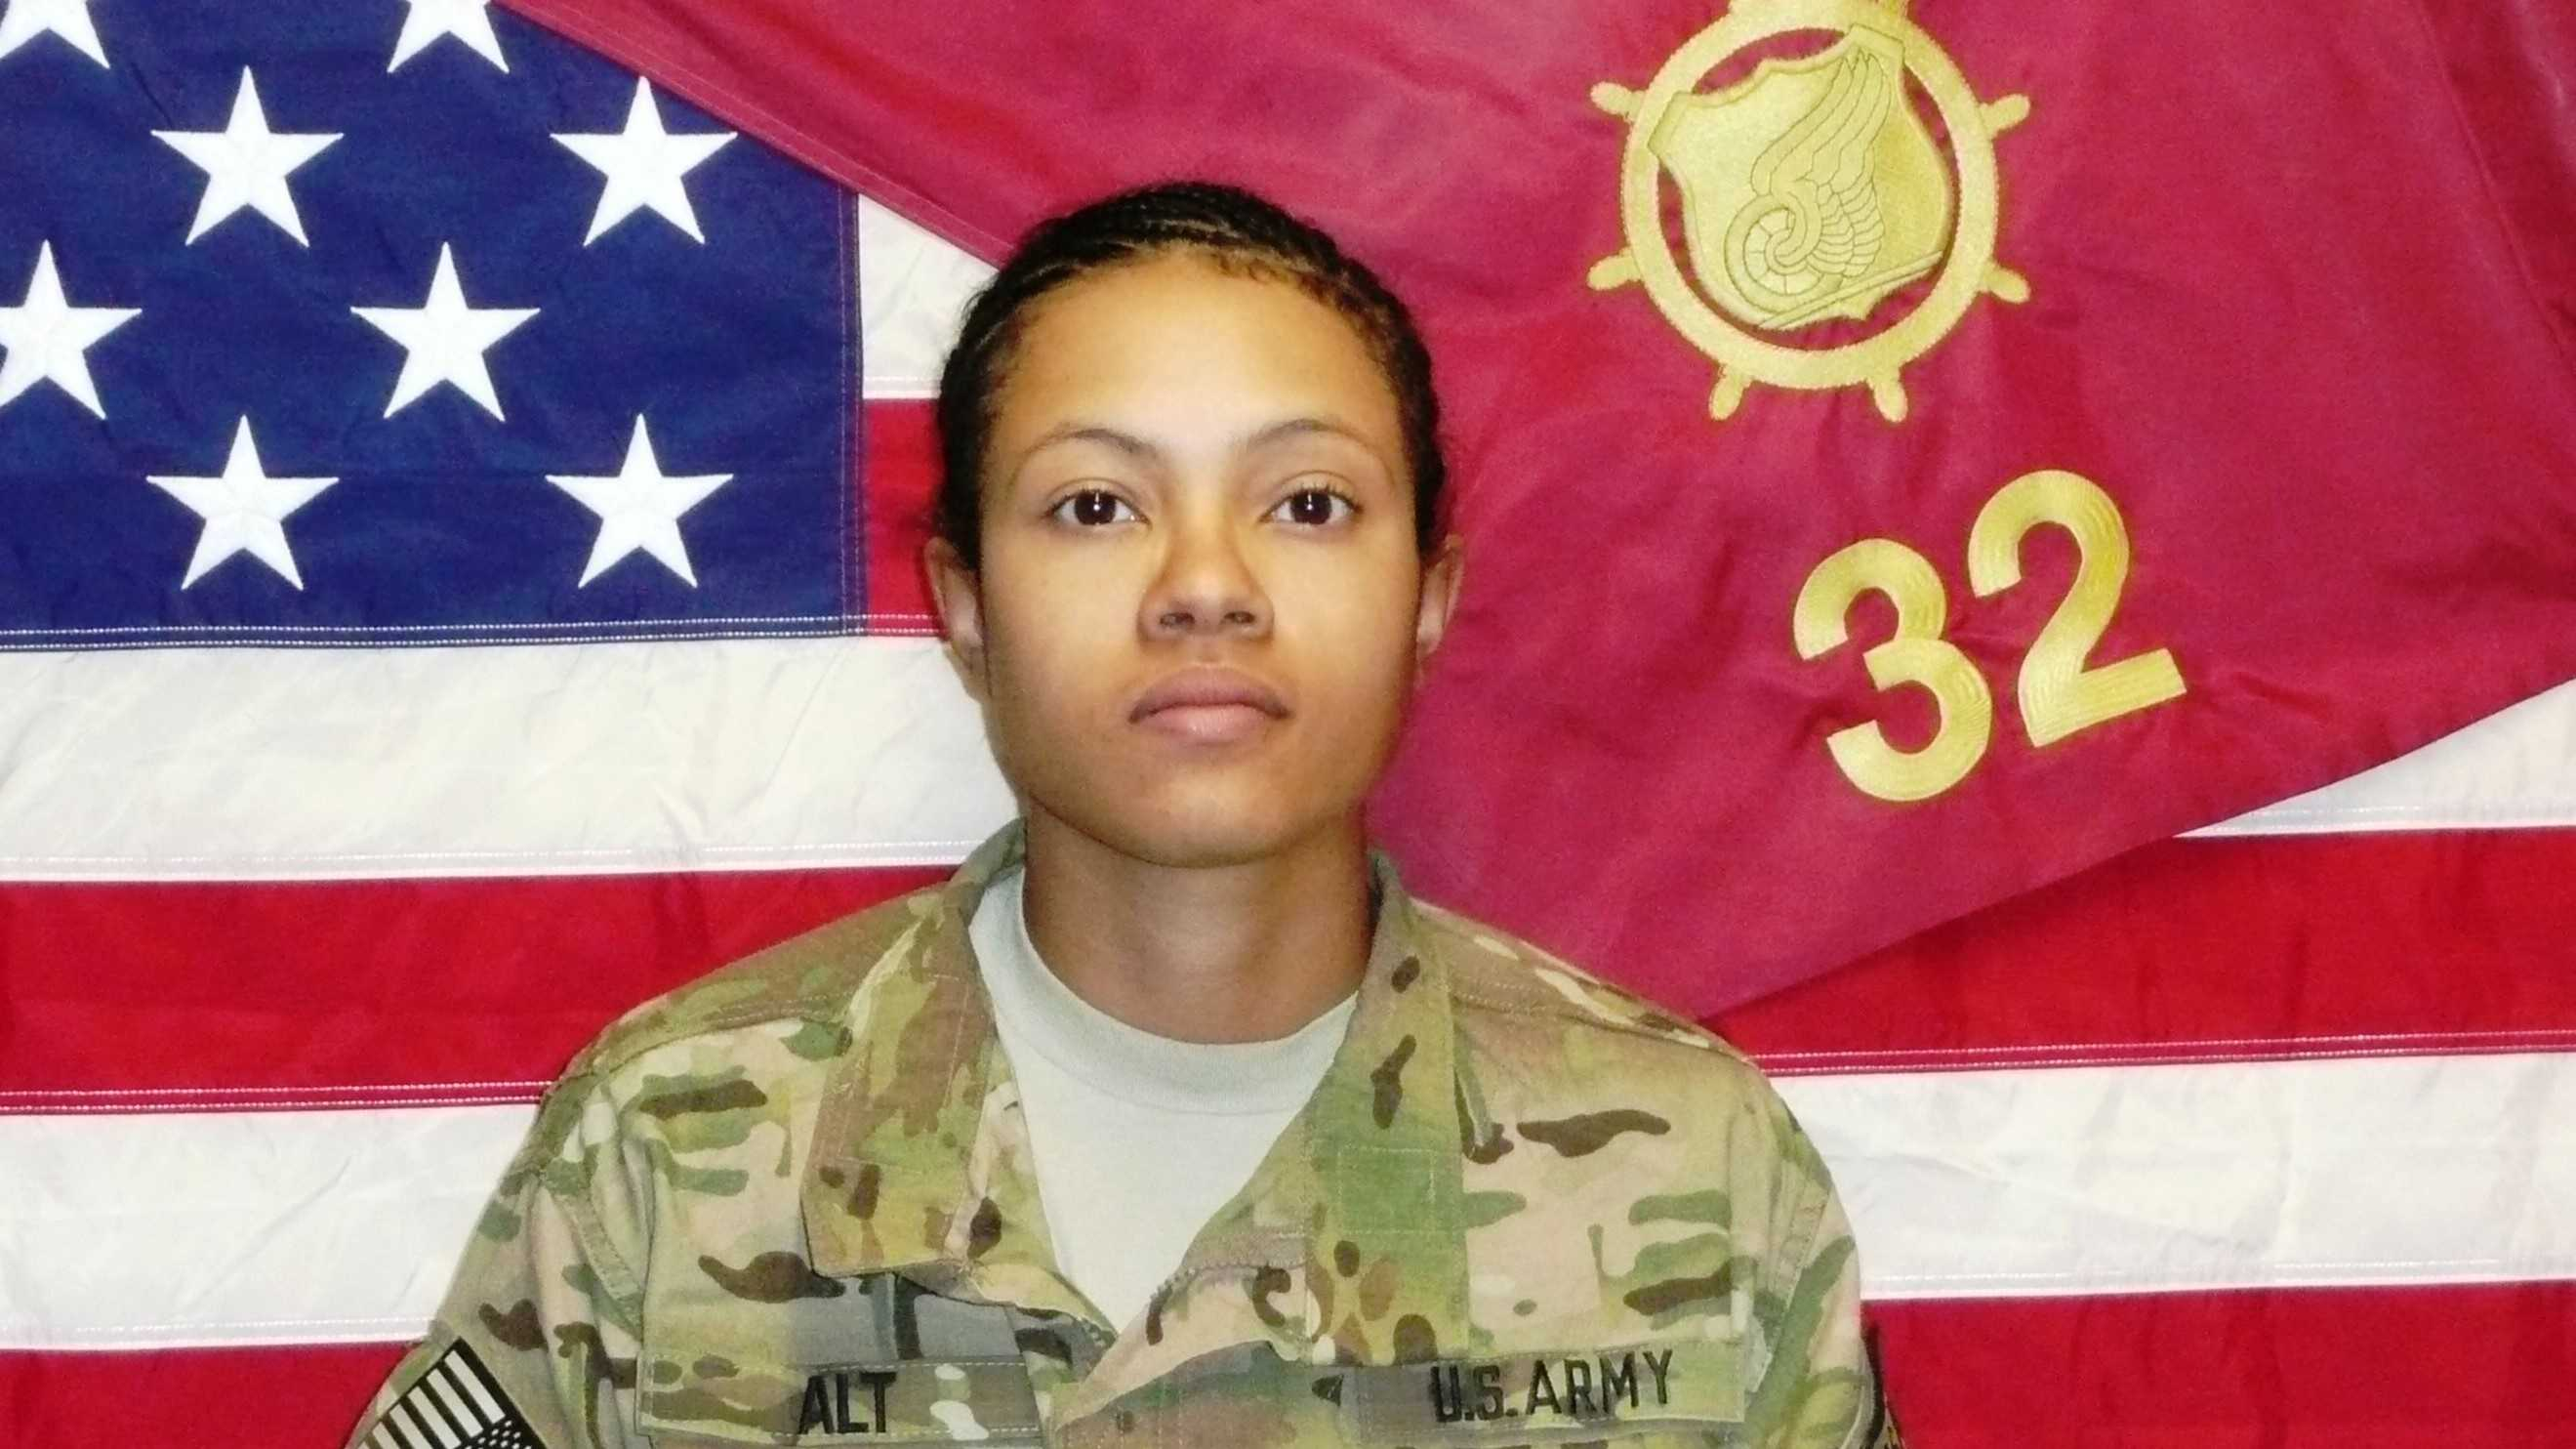 Spc. Ember M. Alt was killed in action on Tuesday during a rocket attack on her unit in Bagram, Afghanistan.